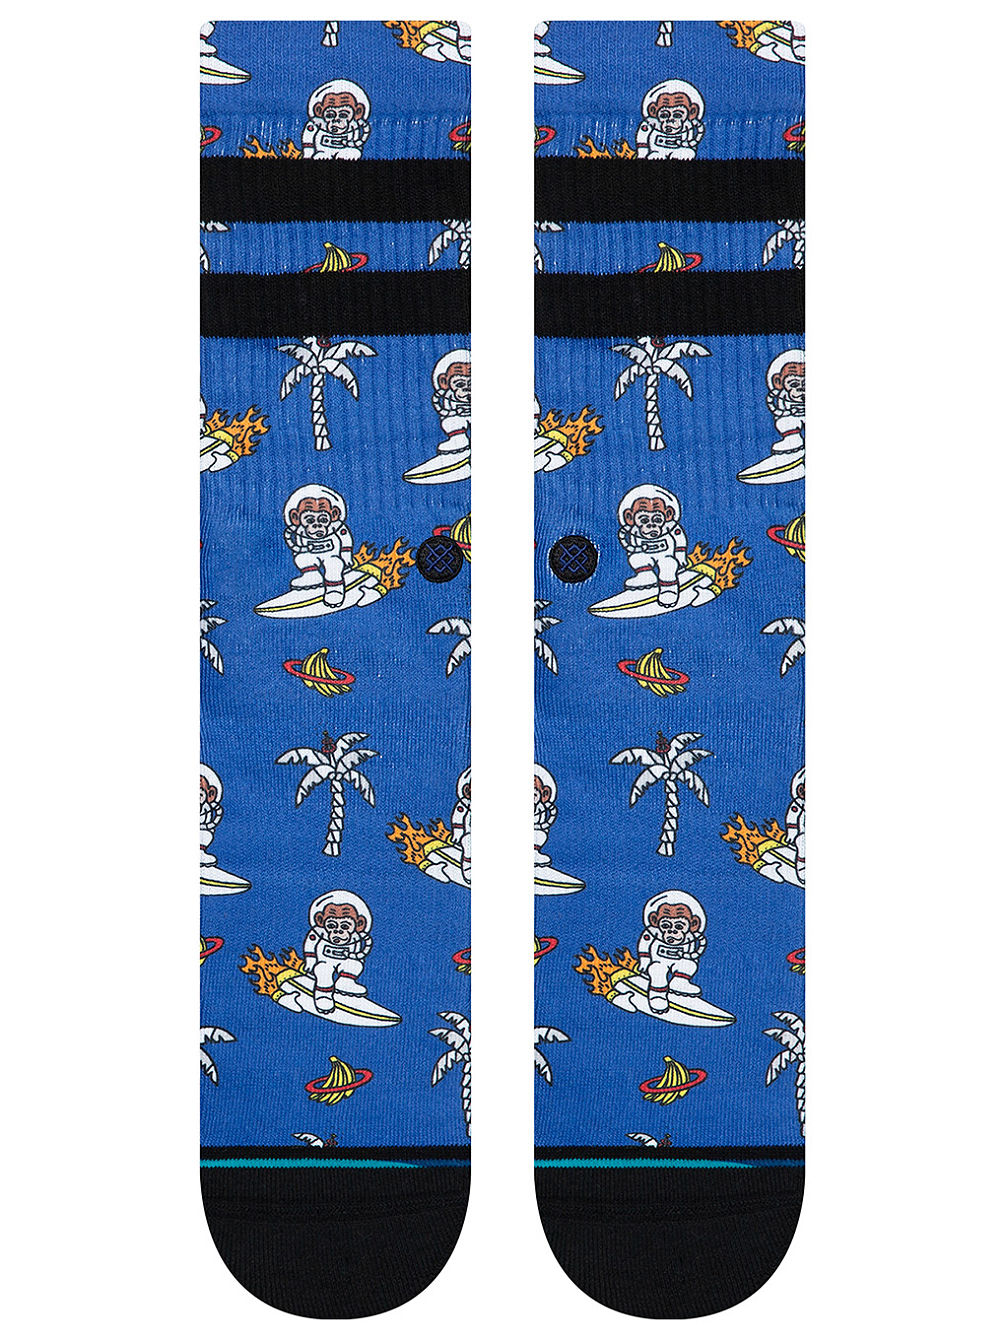 Space Monkey Socken